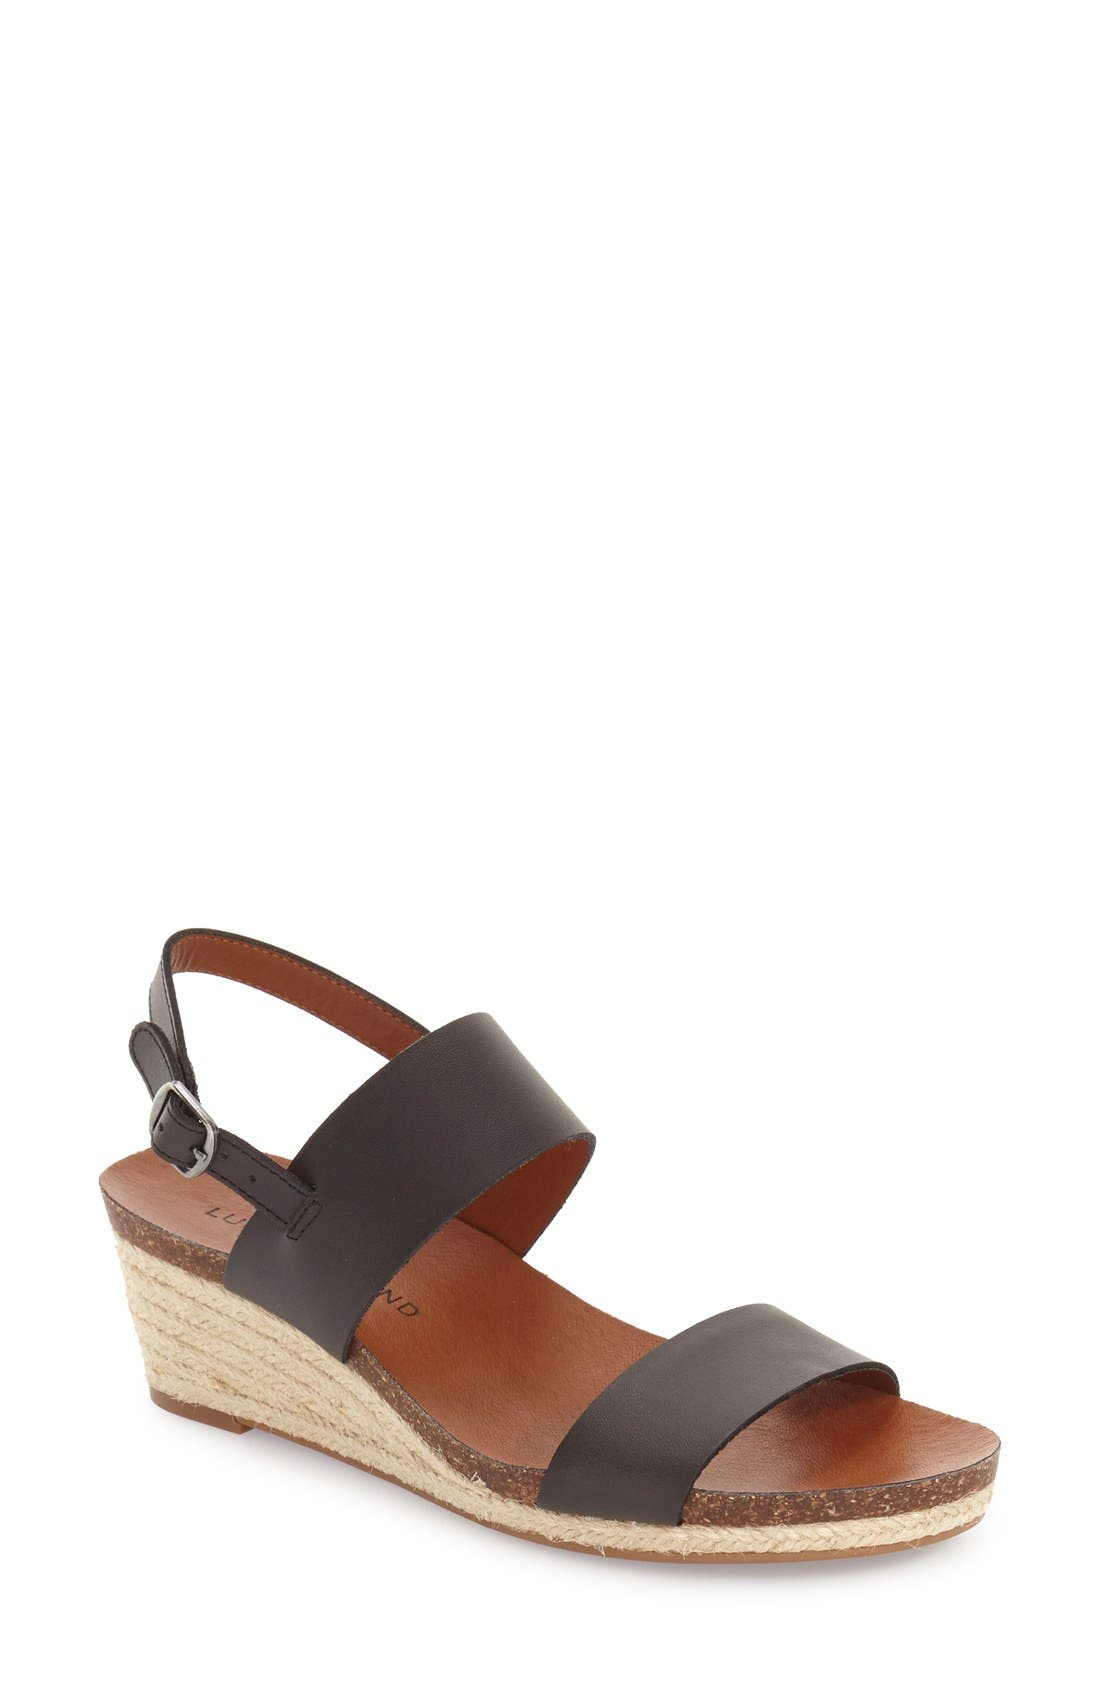 Alternate Image 1 Selected - Lucky Brand 'Jette' Wedge Sandal (Women)